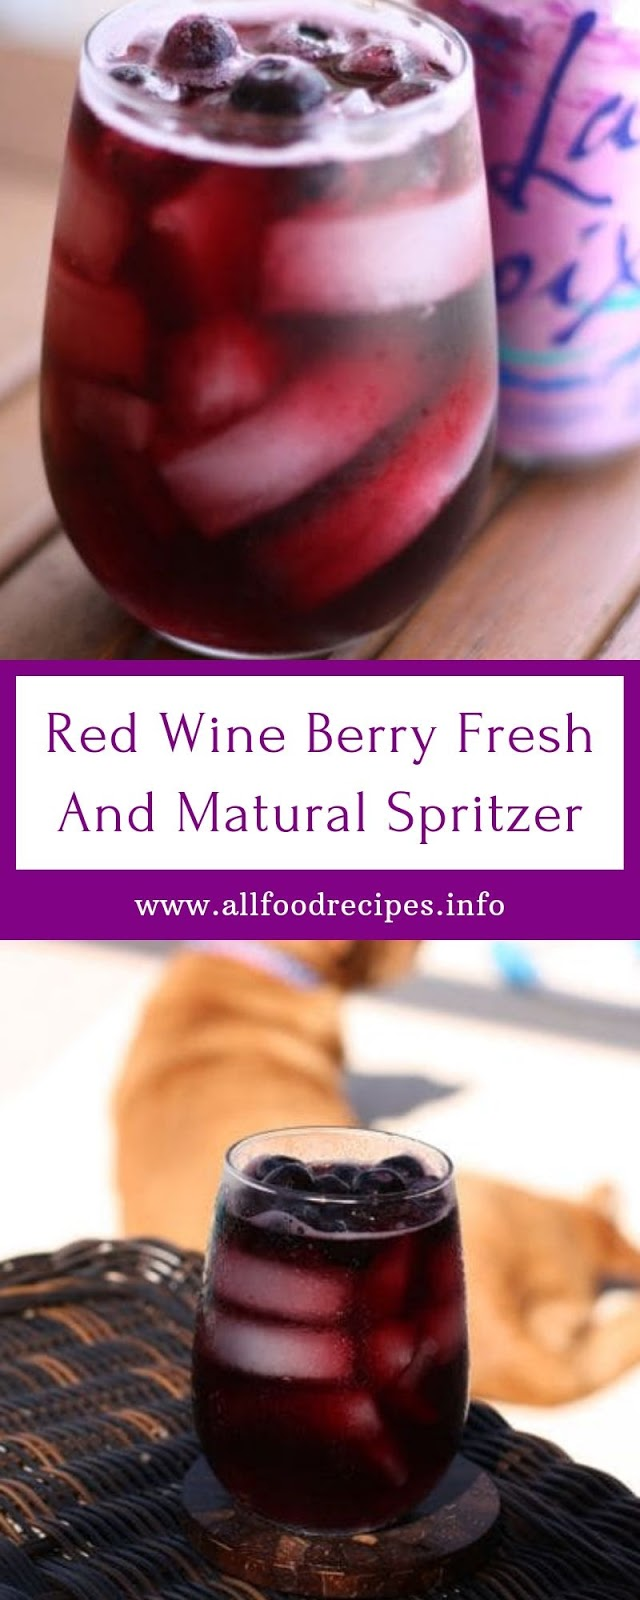 Red Wine Berry Fresh And Matural Spritzer